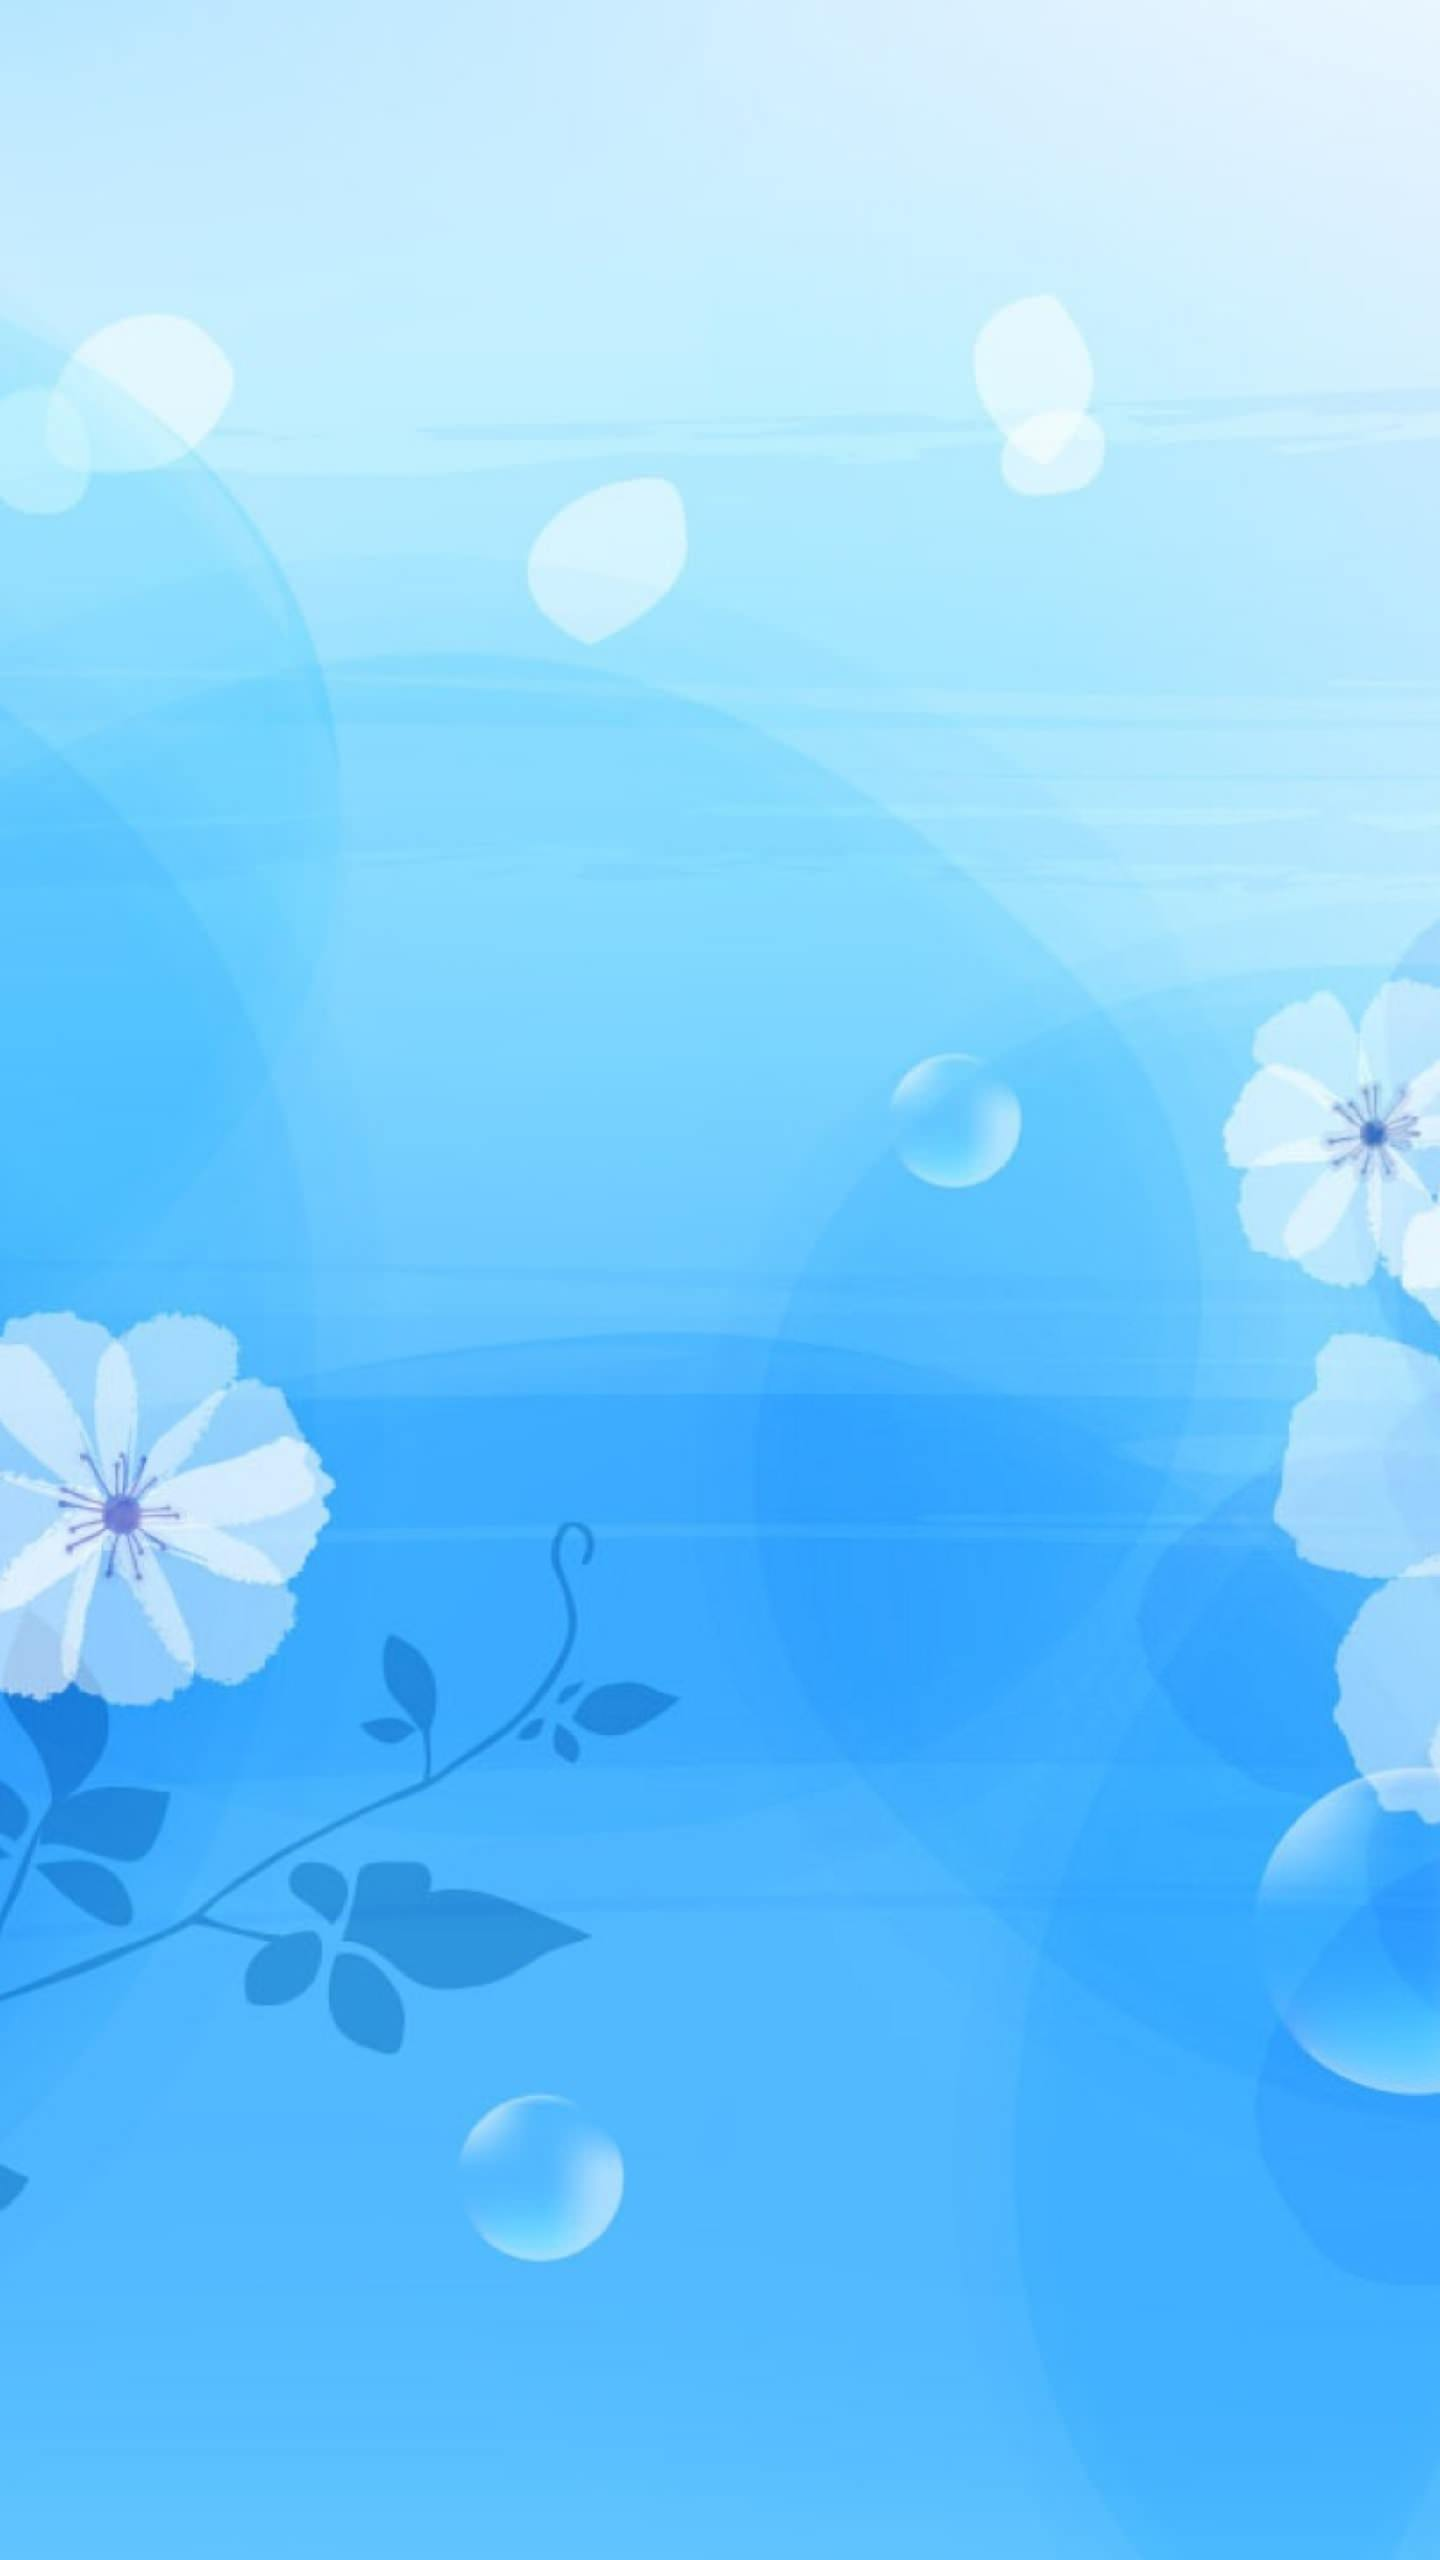 Download 1000+ Wallpaper Biru Aqua  Paling Keren